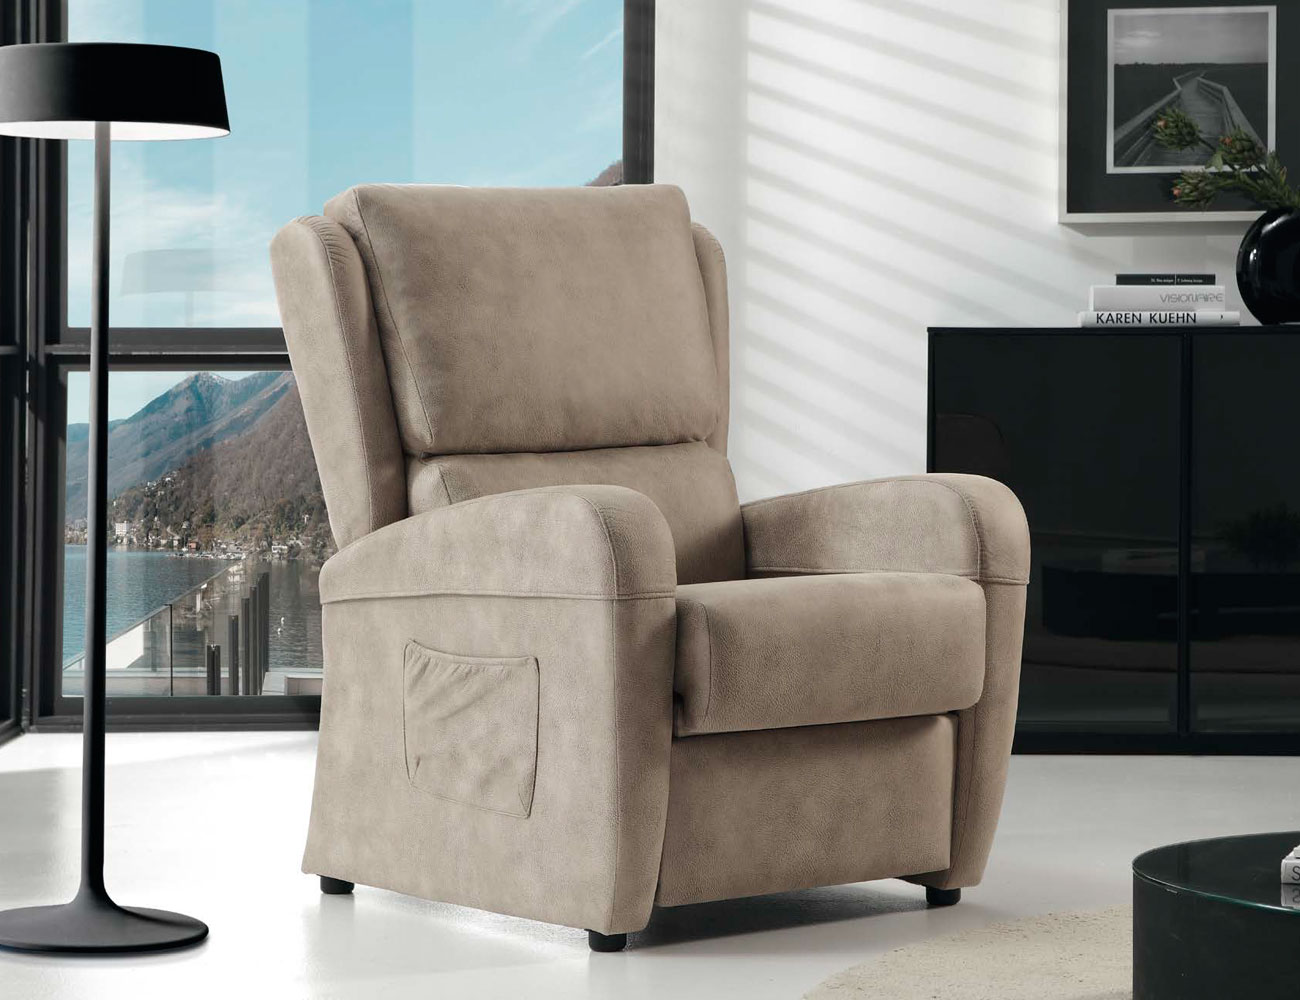 Sillon relax manual jana12